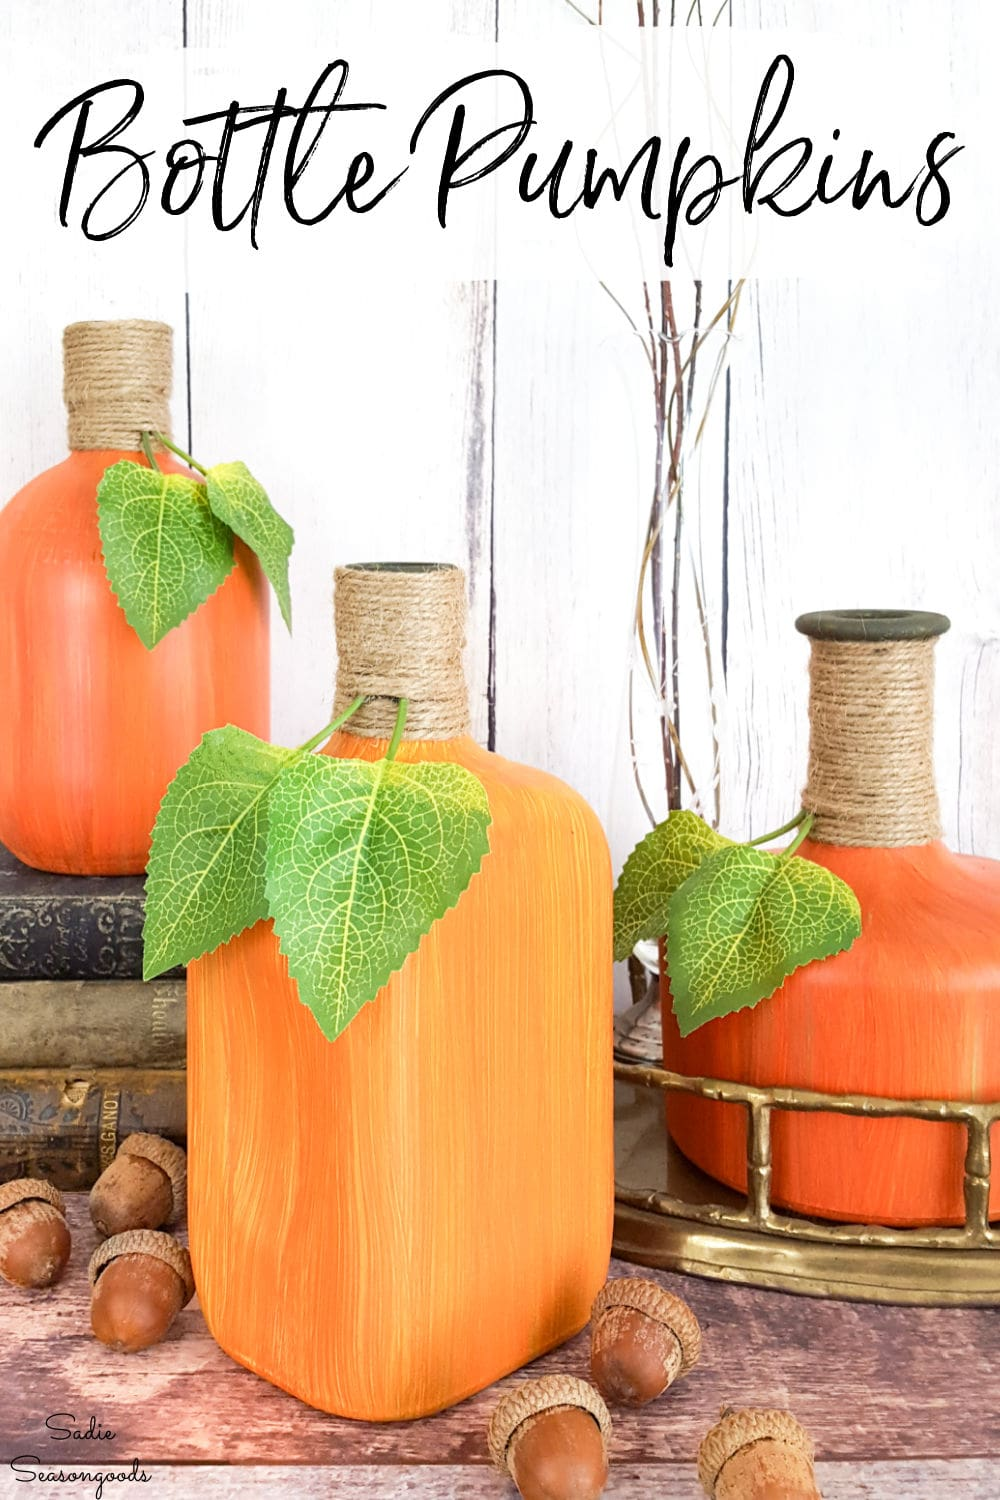 liquor bottle painting and crafts